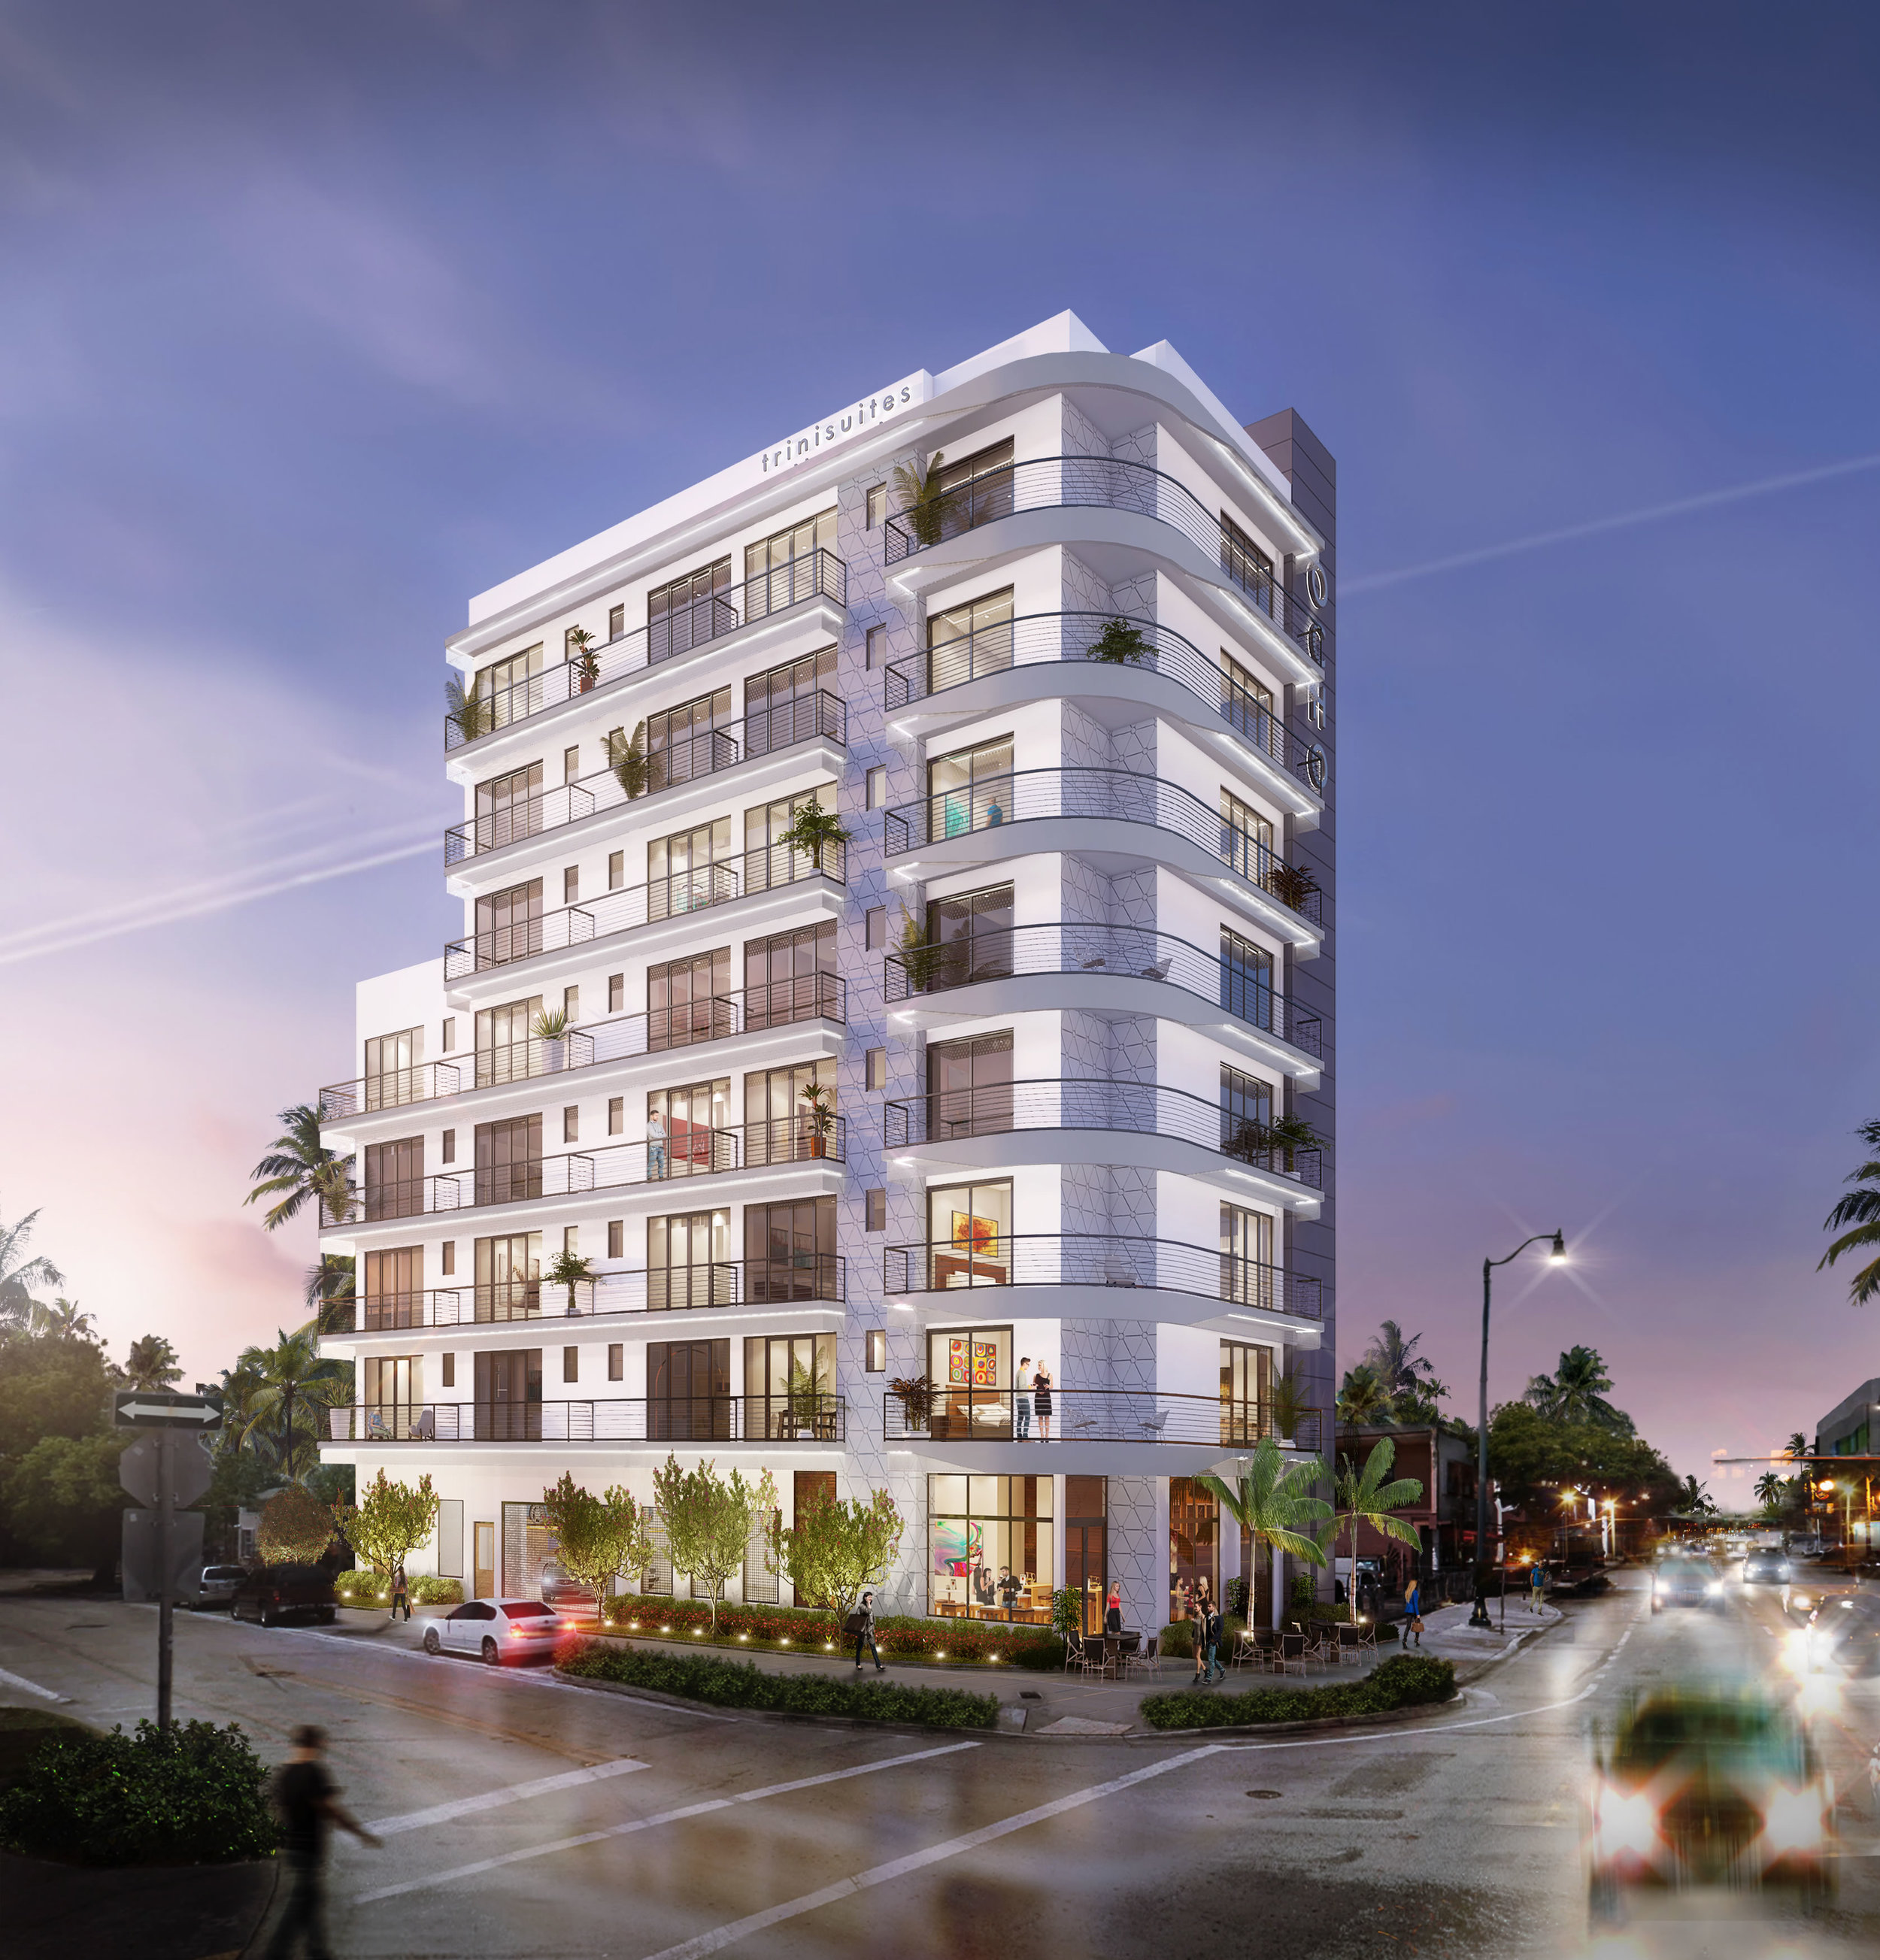 Metronomic Breaks Ground On TriniSuites Calle Ocho, Their New Off-Campus Student Housing Project In Little Havana